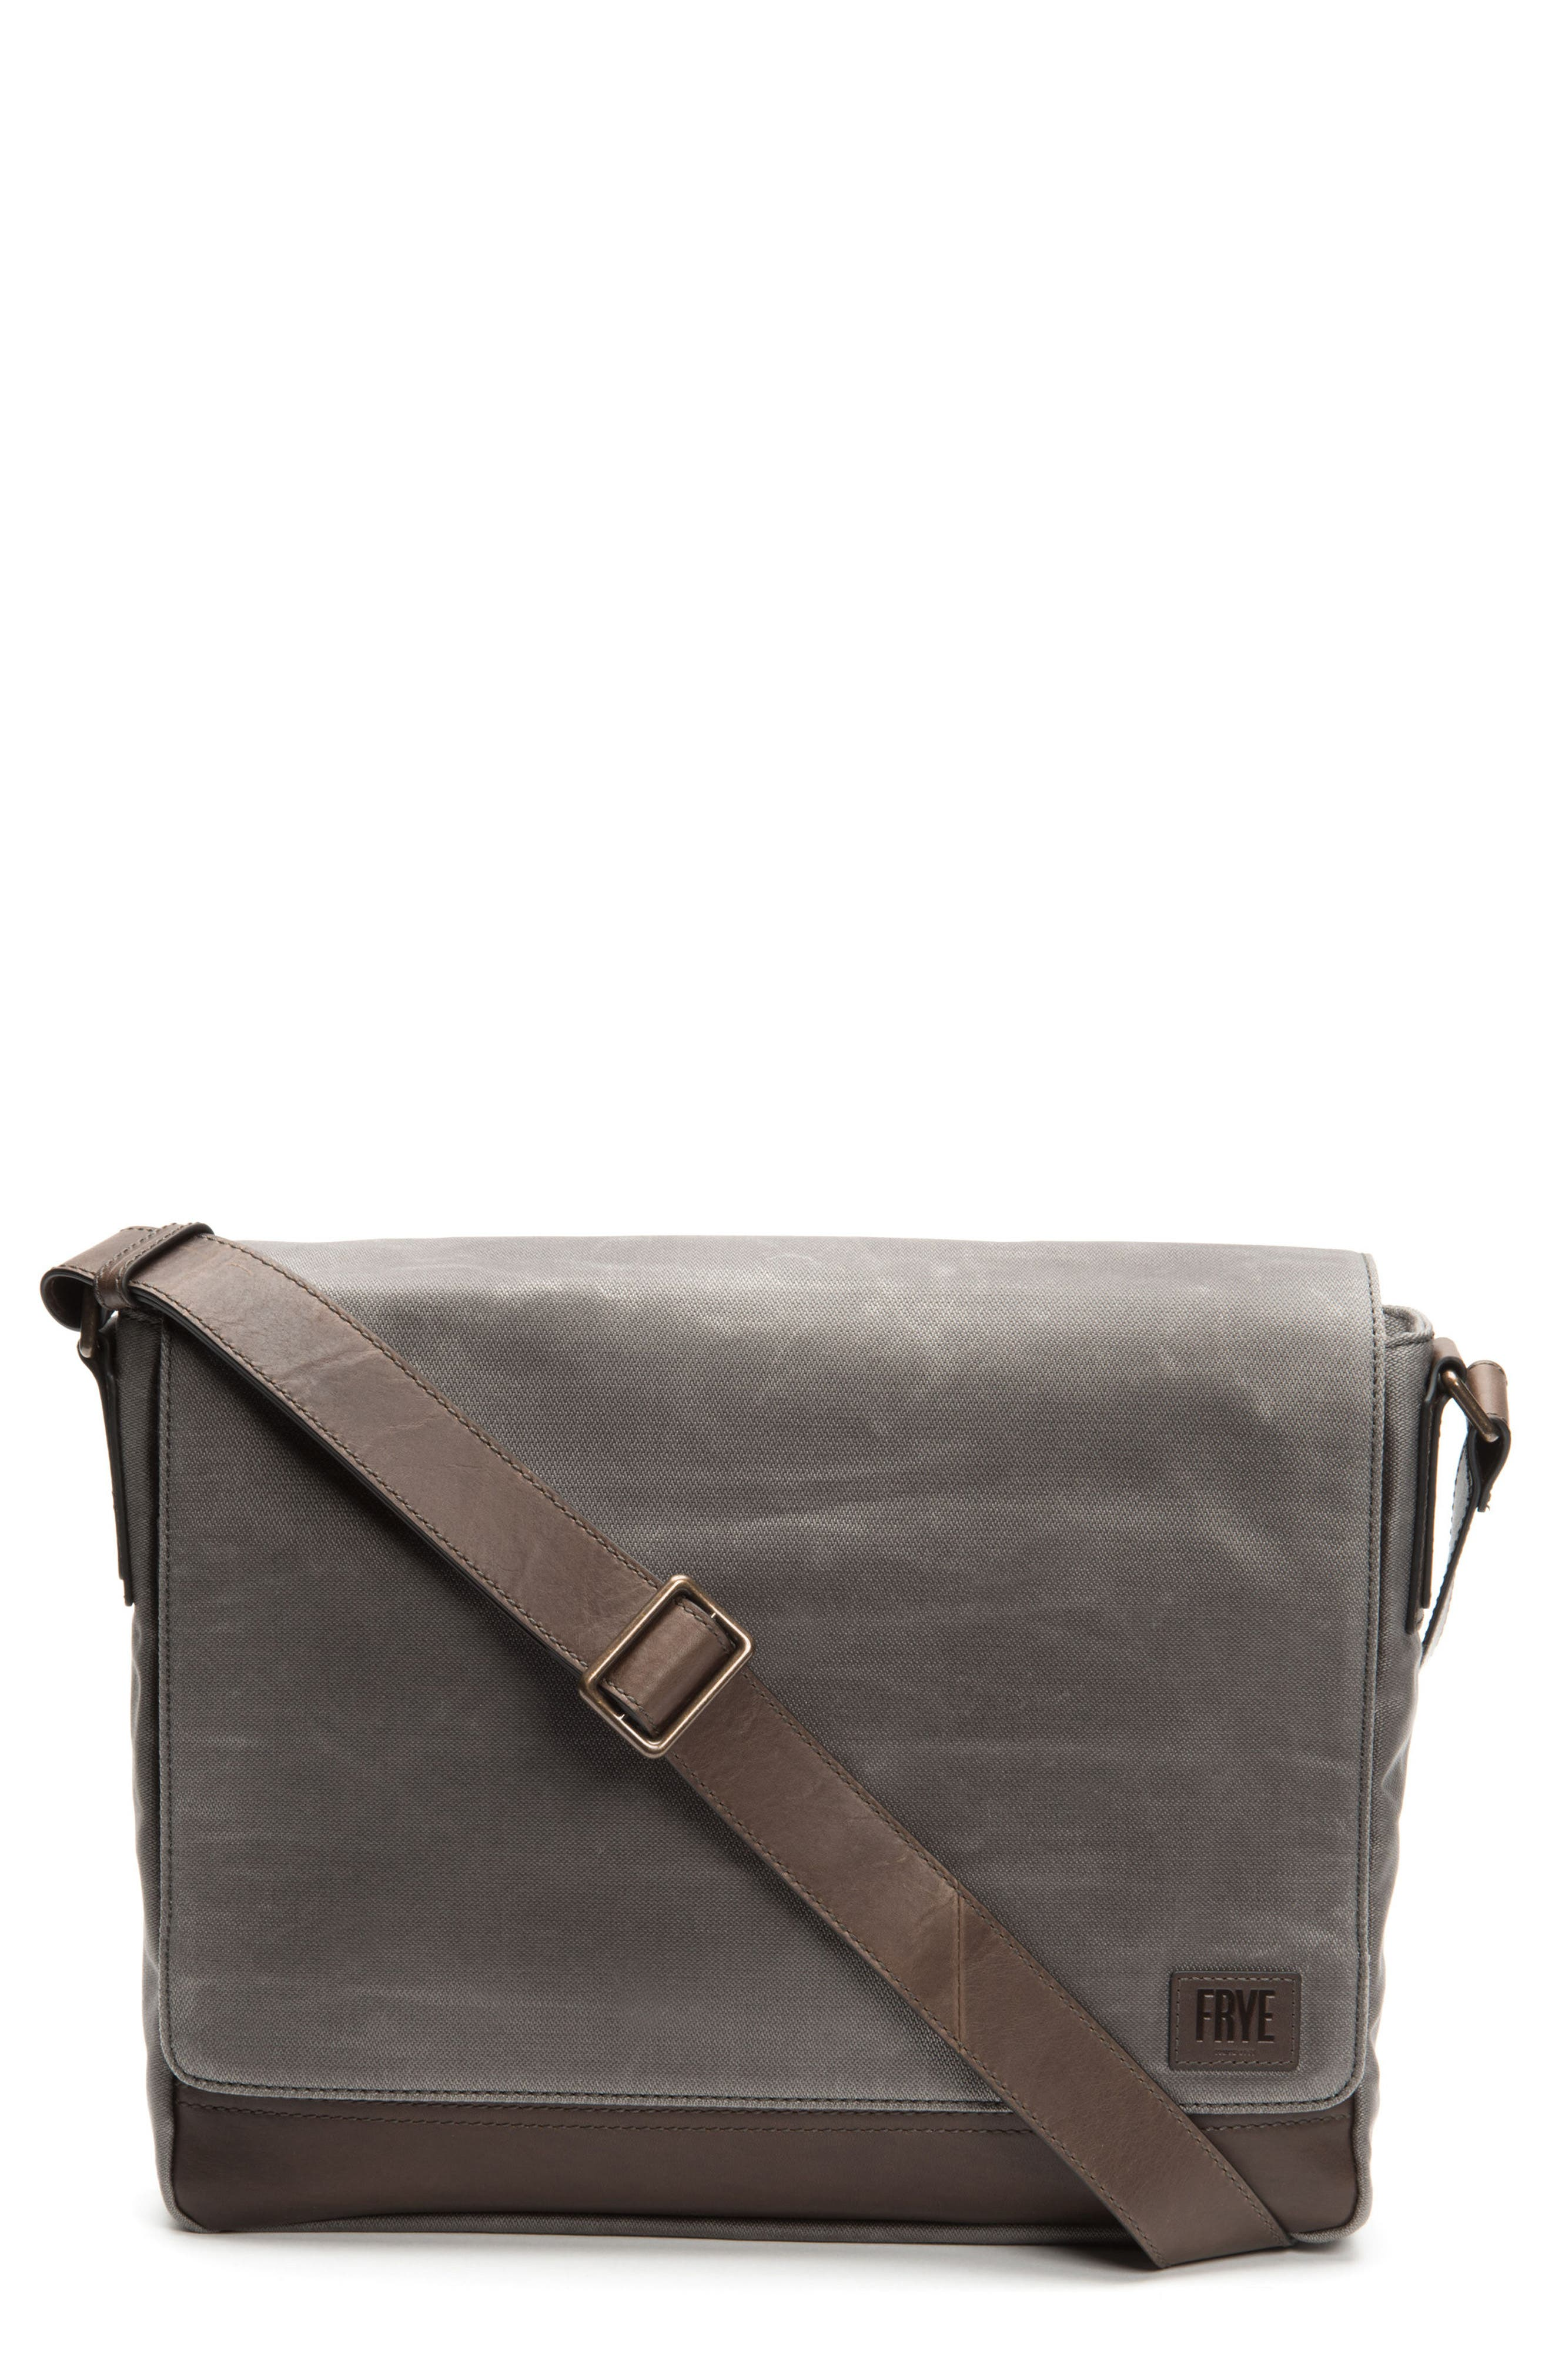 Frey Carter Messenger Bag,                             Main thumbnail 1, color,